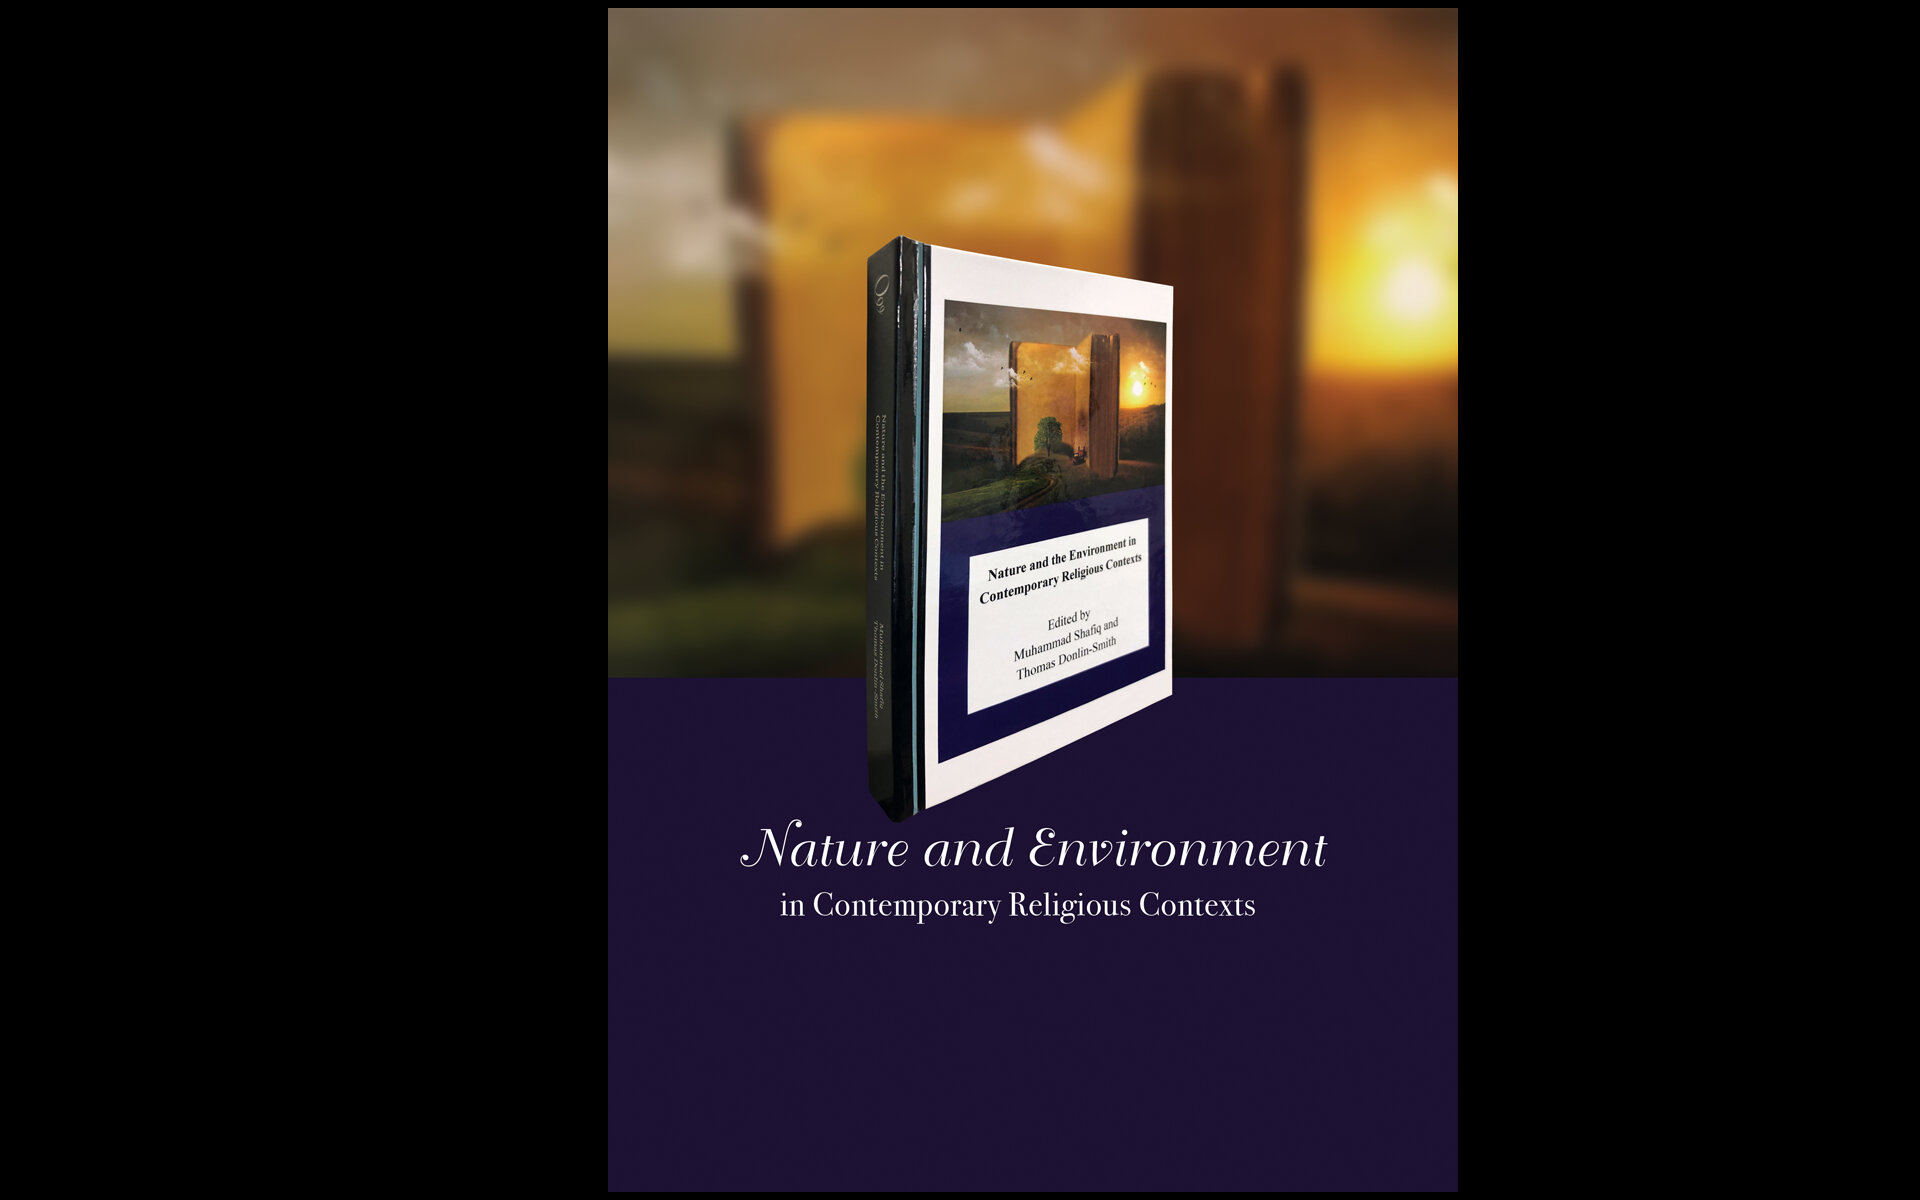 Nature and Environment in Contemporary Religious Contexts